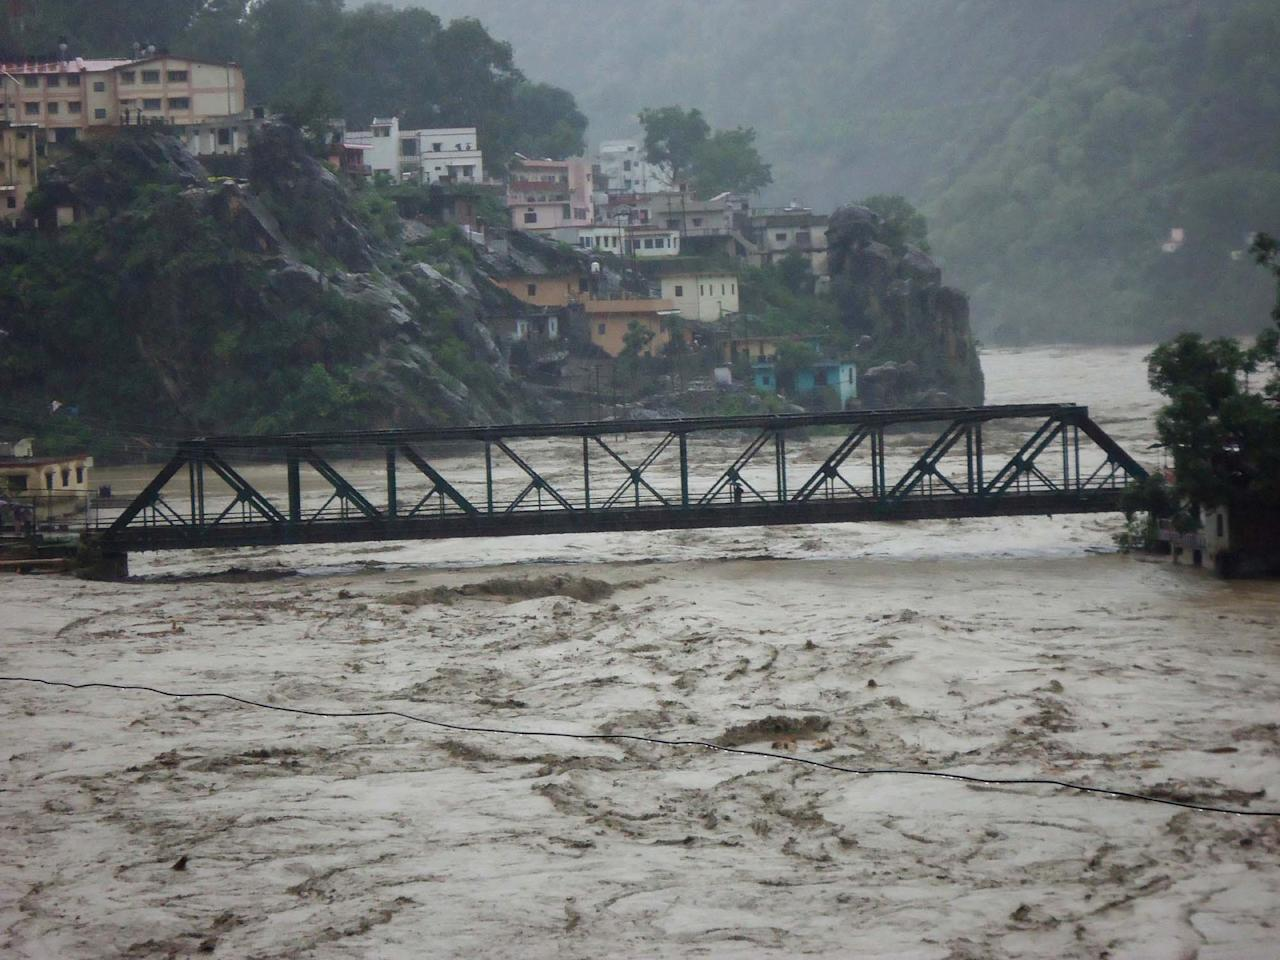 RUDRAPRAYAG, INDIA - JUNE 17: Several houses on the banks of Alaknanda River have fallen prey to the rise in water level post heavy rainfall on June 17, 2013 in Rudraprayag, India. 11 people died, nearly 50 were missing and thousands stranded in landslides set off by the incessant downpour in Uttarakhand. (Photo by Badri Nautiyal/Hindustan Times via Getty Images)